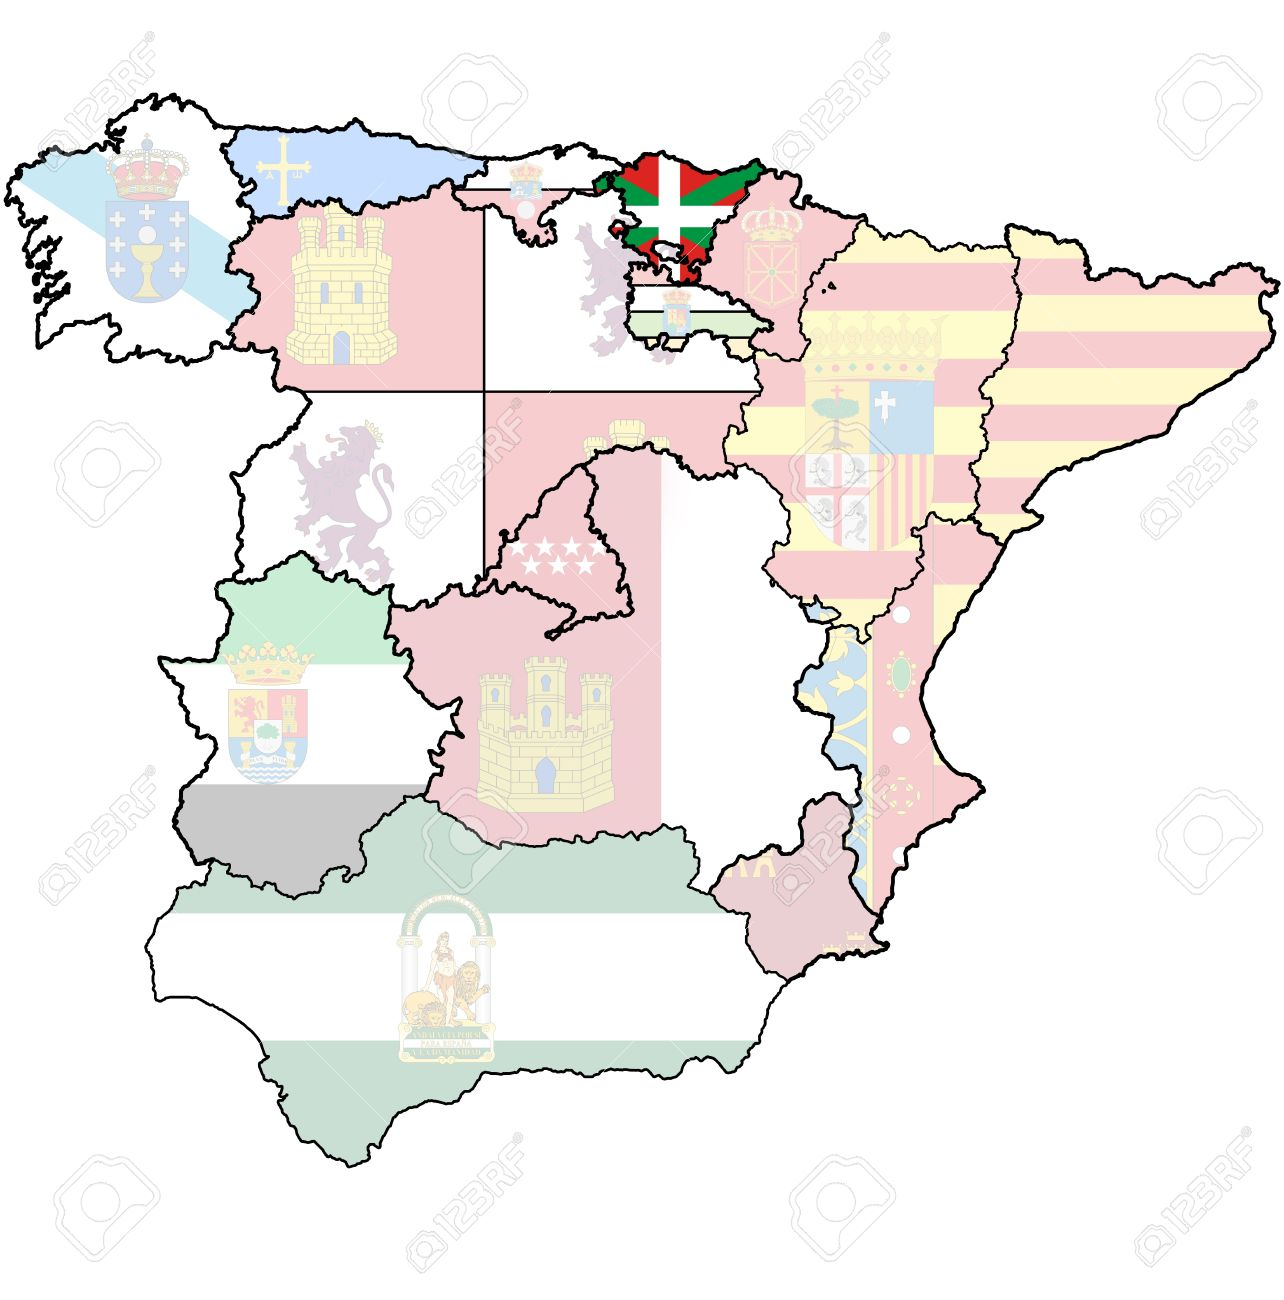 Basque Map Of Spain.Basque Country Region On Administration Map Of Regions Of Spain